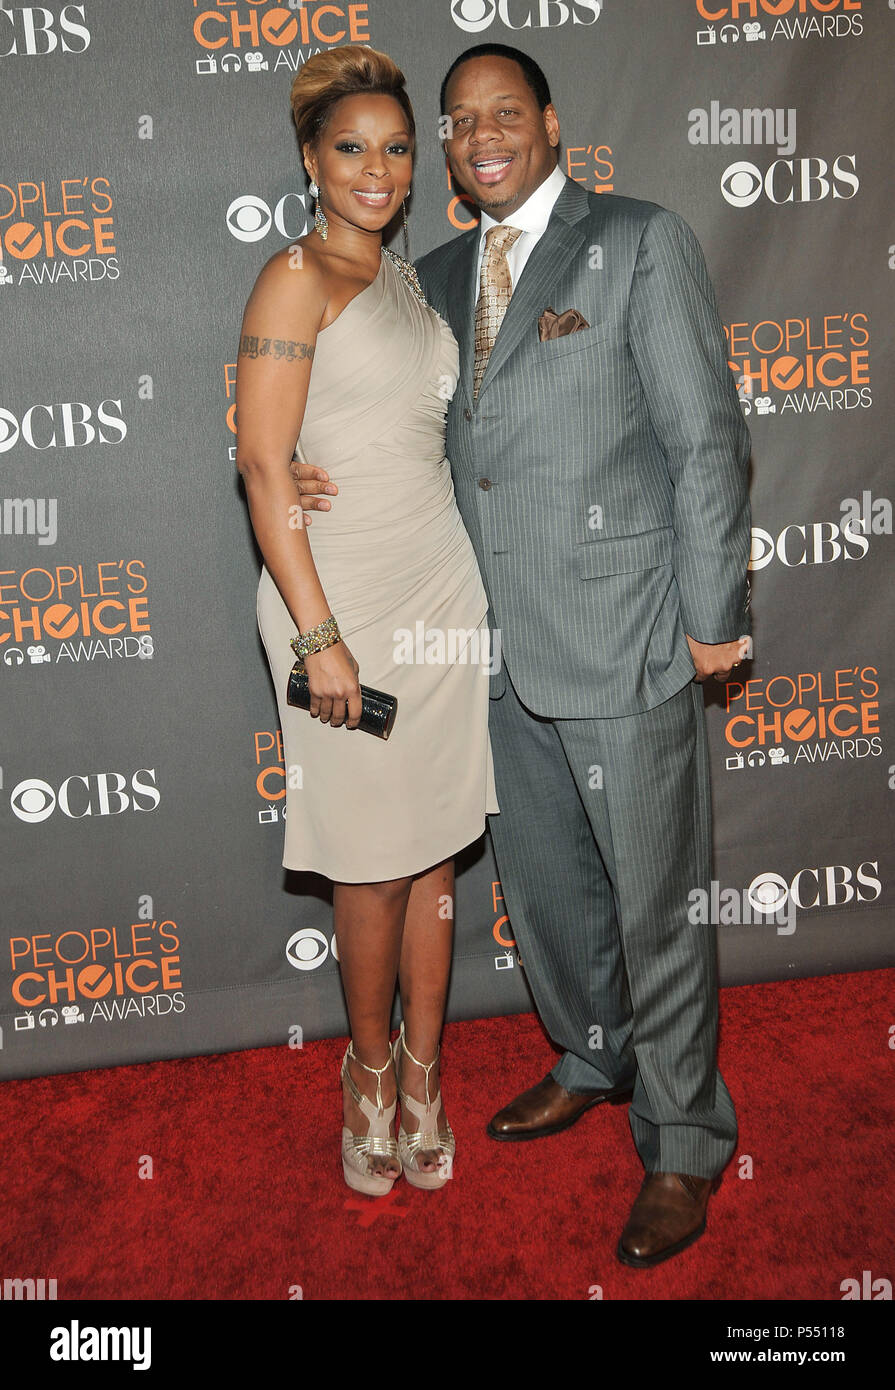 Mary J  Blige Kendu Isaacs 102 - PeopleÕs Choice Awards 2010 at the